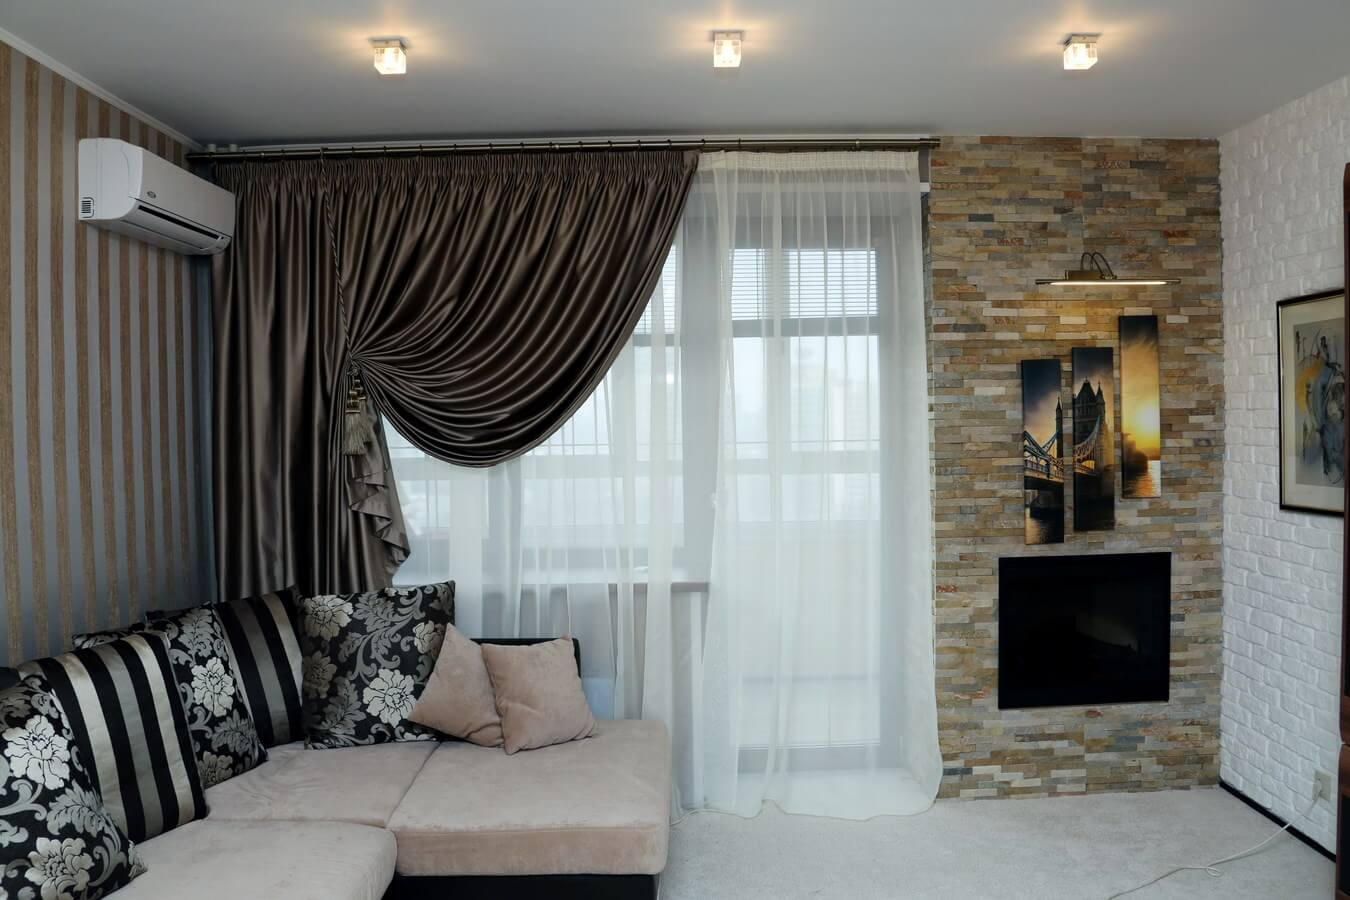 Curtains Rods: Types, Production Materials, Fastening Overview. Cozy living room with chic blackout drapes